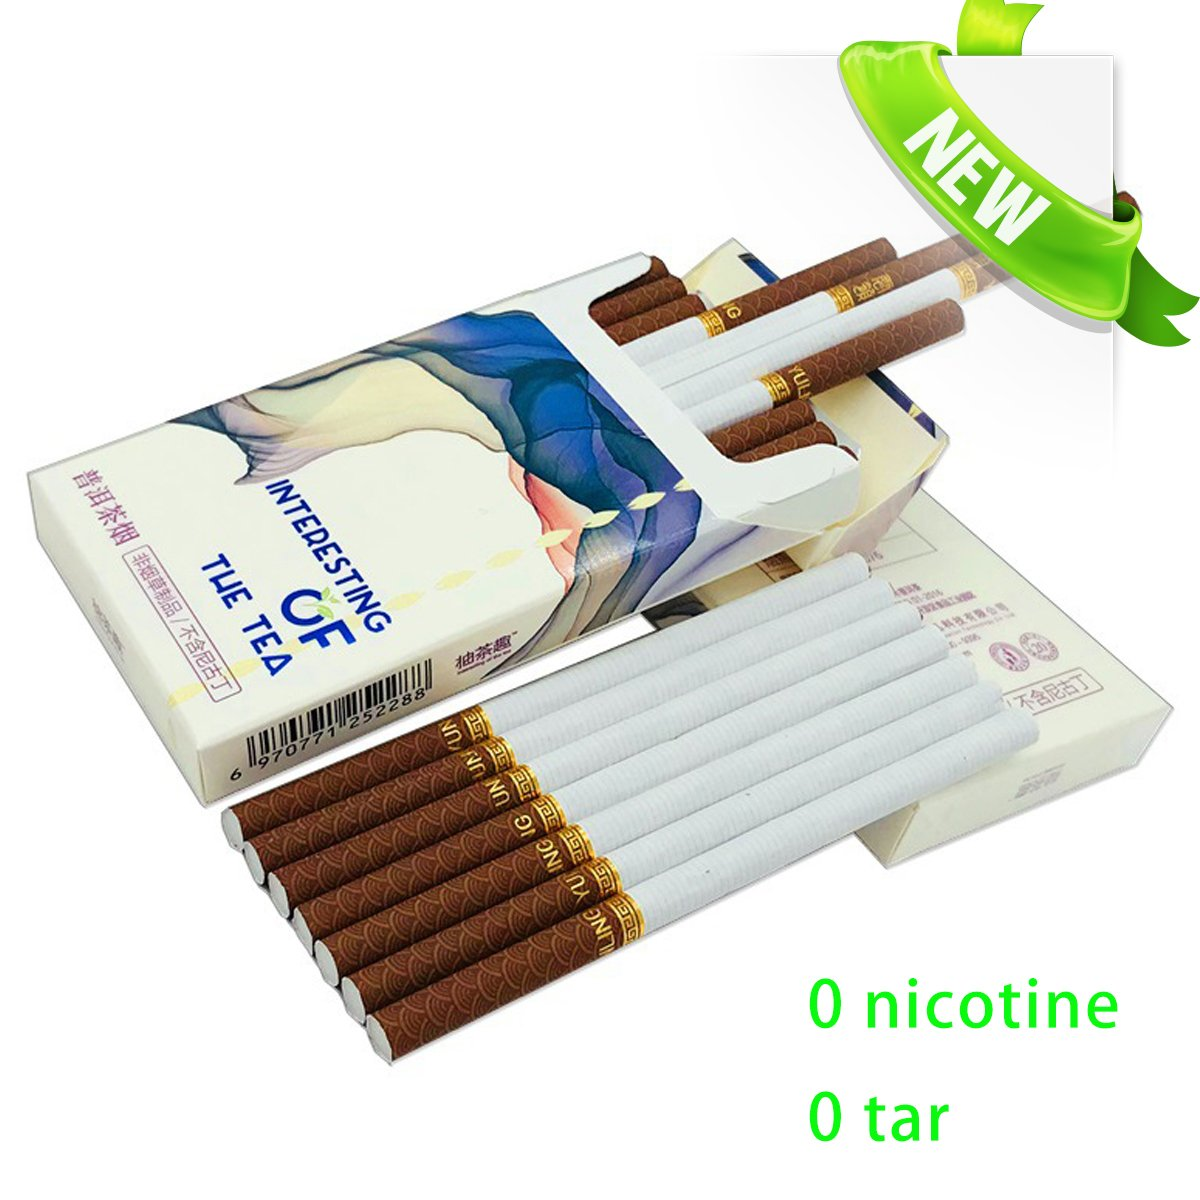 Special Cigarettes - No Nicotine and Tar - Use Herbs(Tea Tea silk Cigarettes) - Instead of Real Cigarettes-20PCS IN ONE BOX (10 BOX(200Pcs))